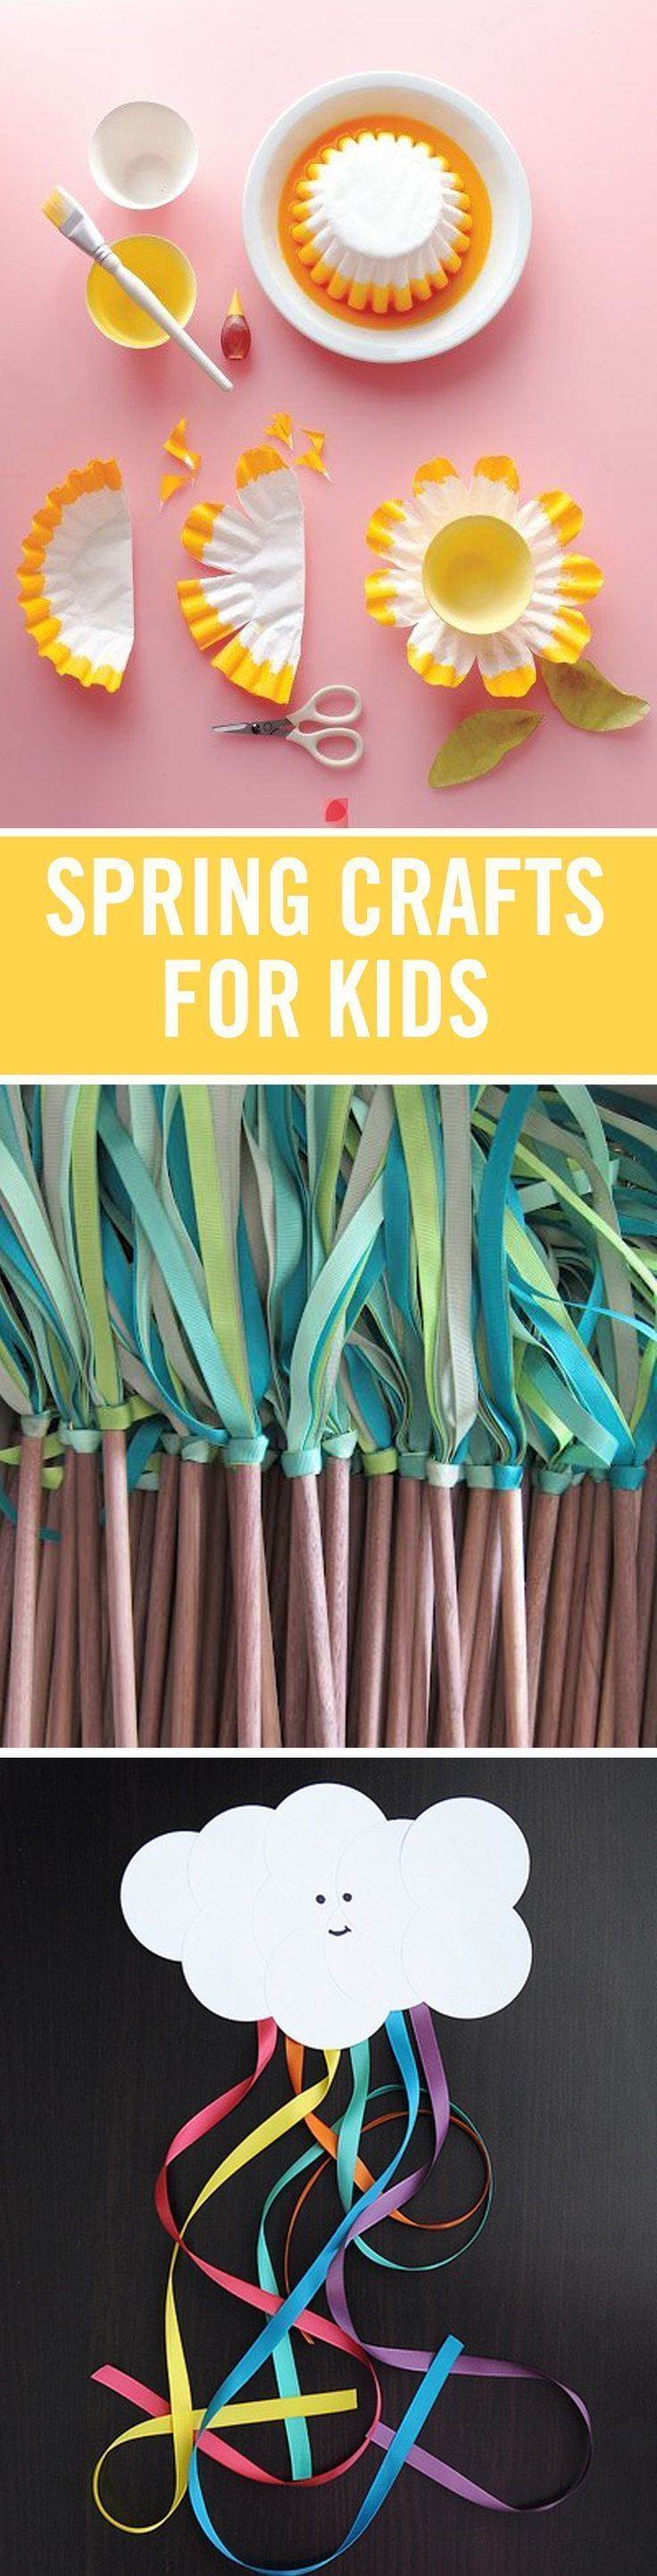 Spring is coming, and to help get your family in the warm weather mood, here are spring crafts and DIYs. Try your hand at a recycled paper bird nest, tin can lanterns, or simple DIY bird feeders. Click here for more kid-friendly options.